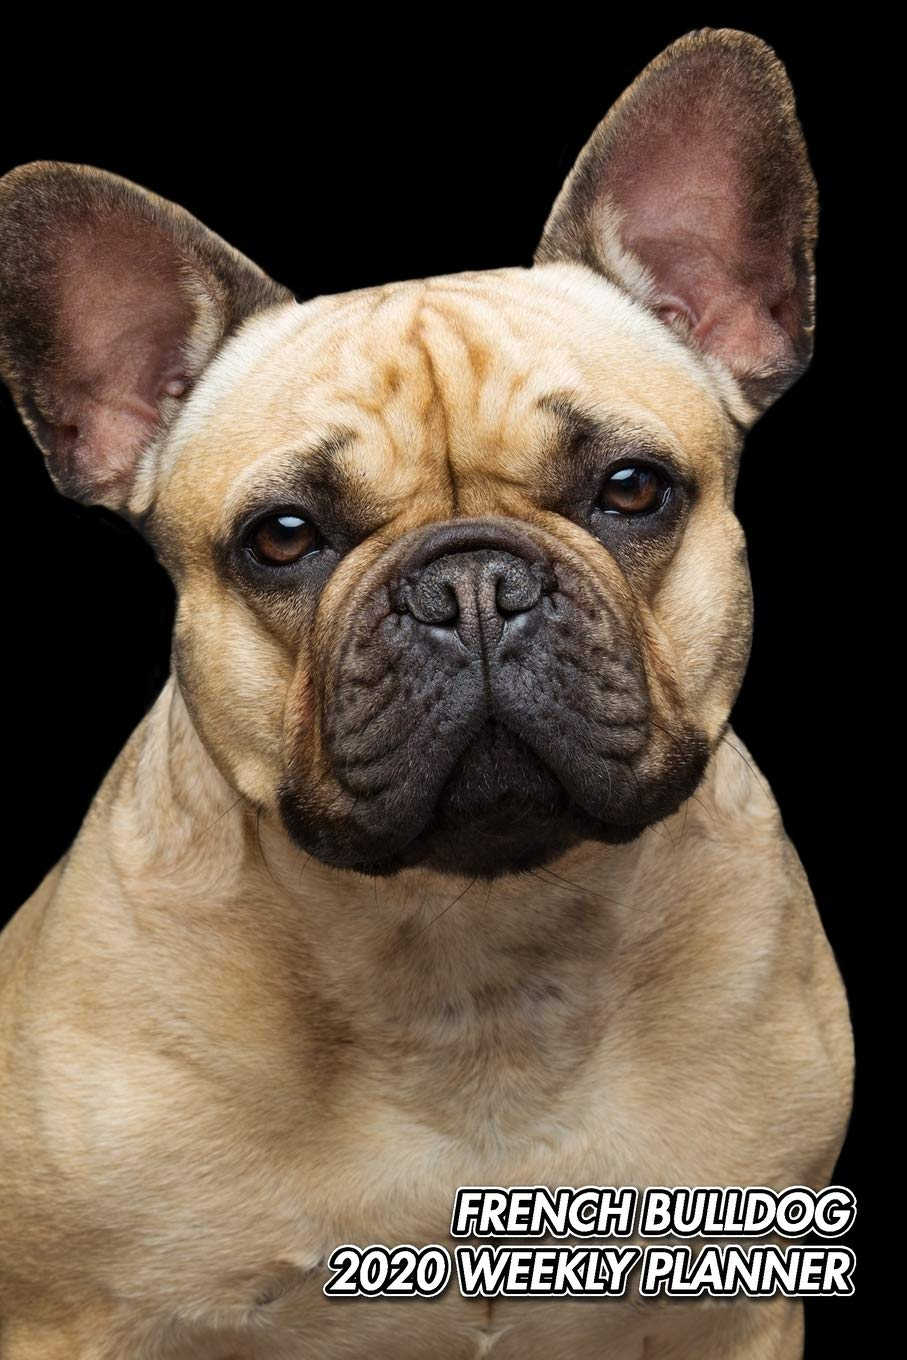 French Bulldog 2020 Weekly Planner: Frenchie | Bouledogue ...